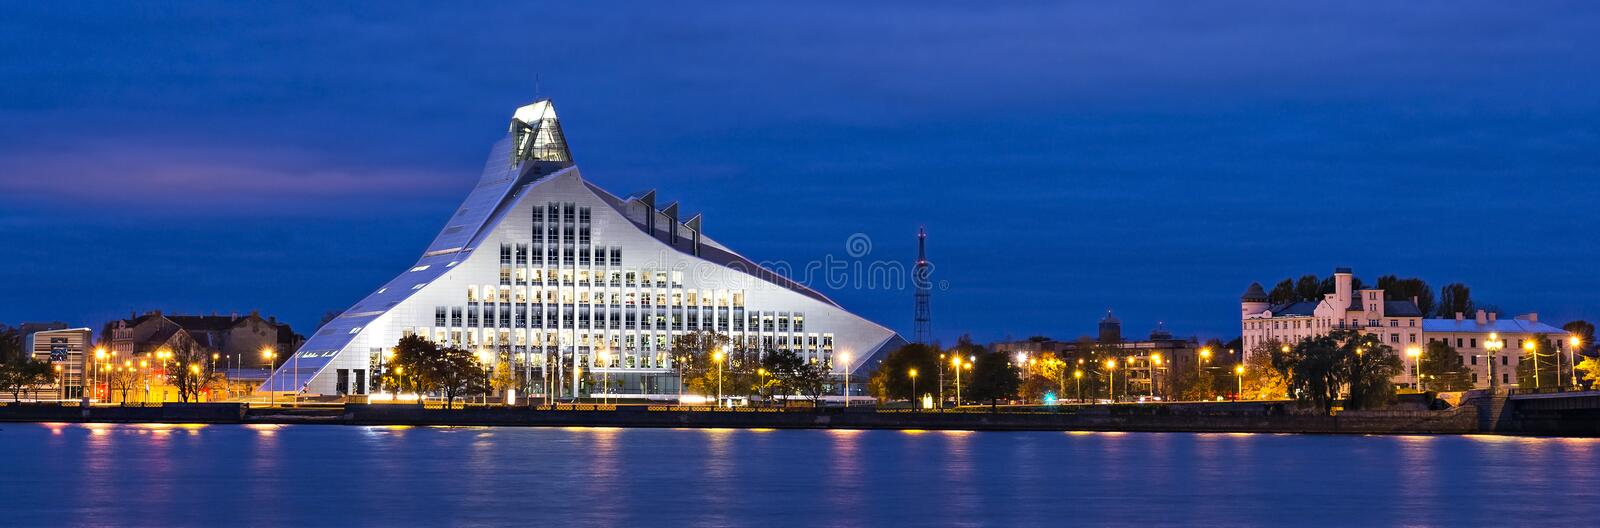 Night view on the national public library in Riga, Latvia royalty free stock image